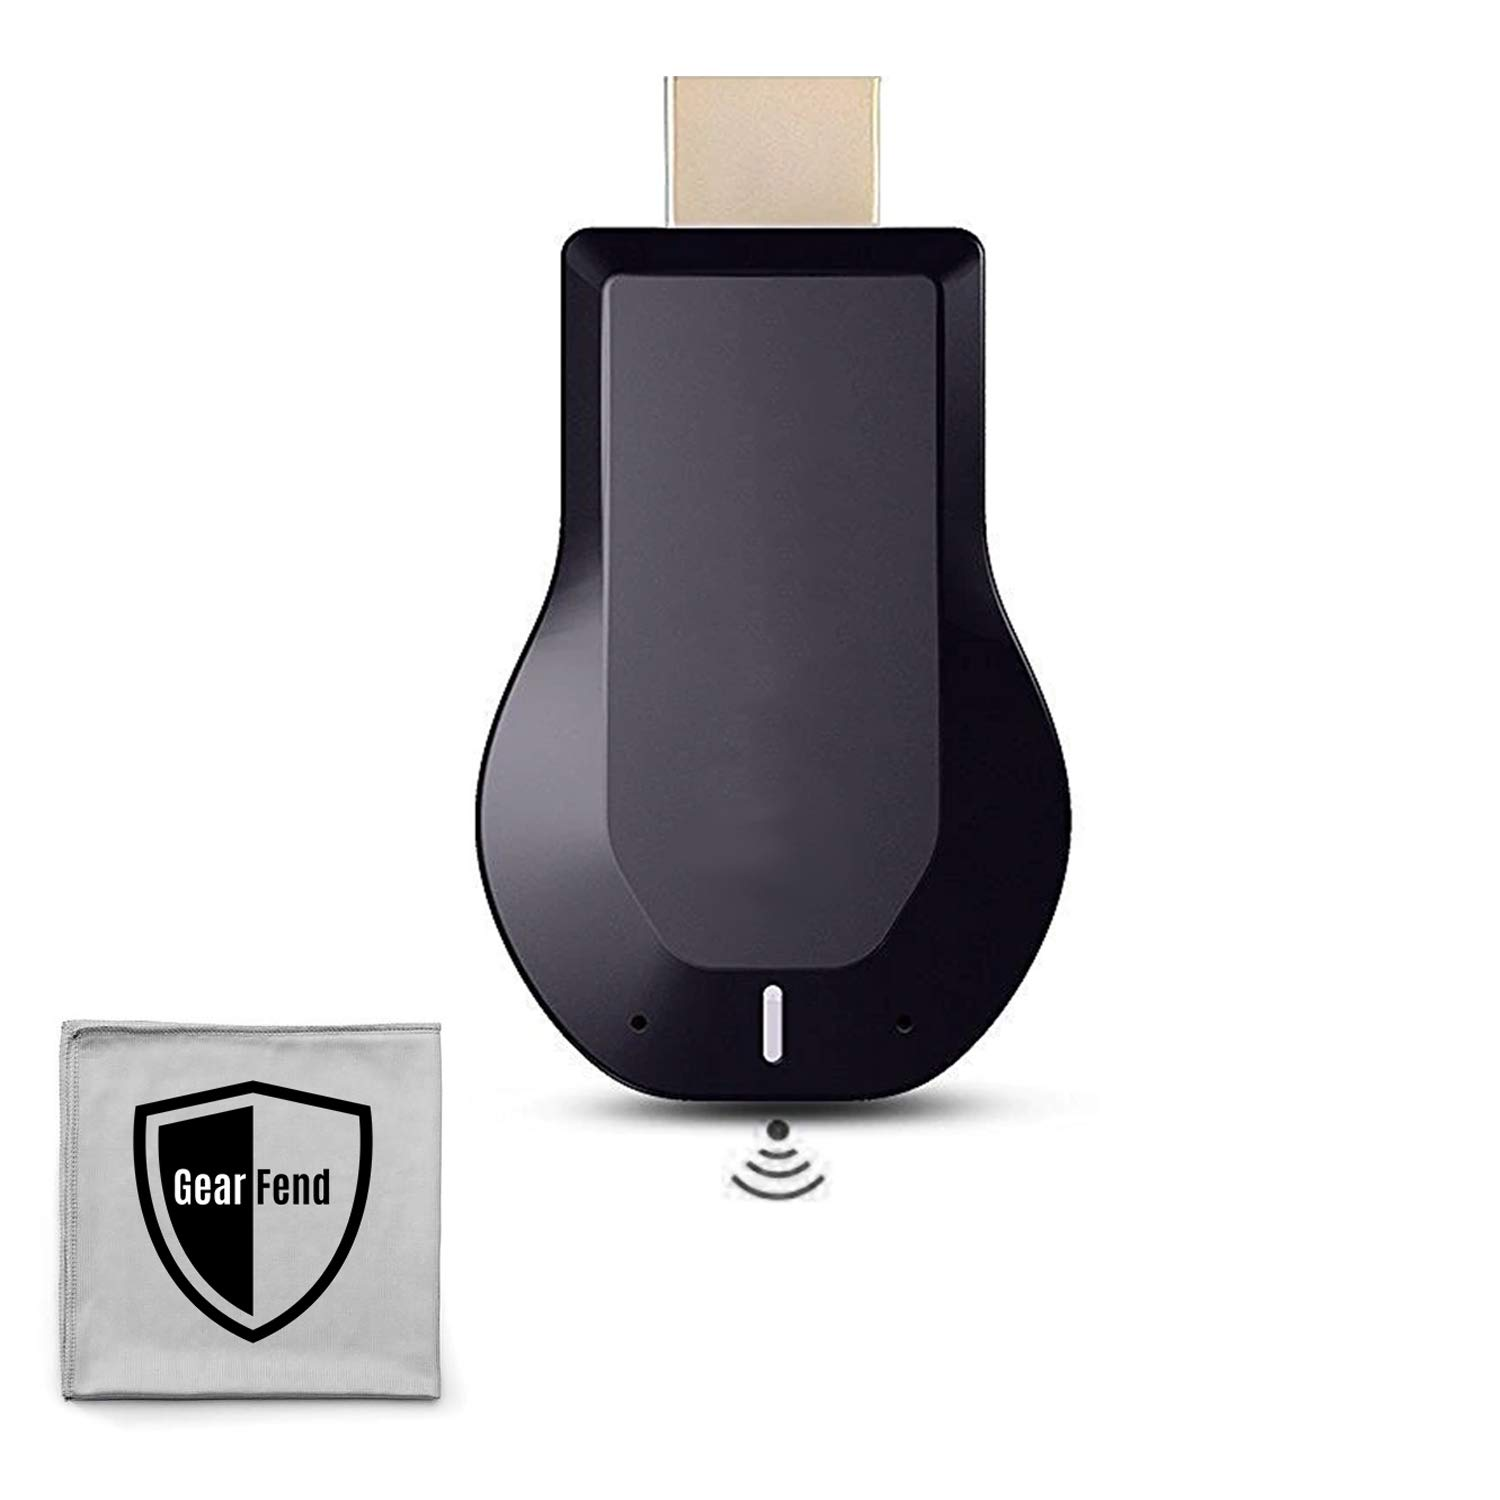 GearFend Wireless WiFi HDMI Display TV Dongle  1080P Wireless Screen  Mirroring and Streaming from Smartphone or Tablet Devices to TV  Plus  Microfiber